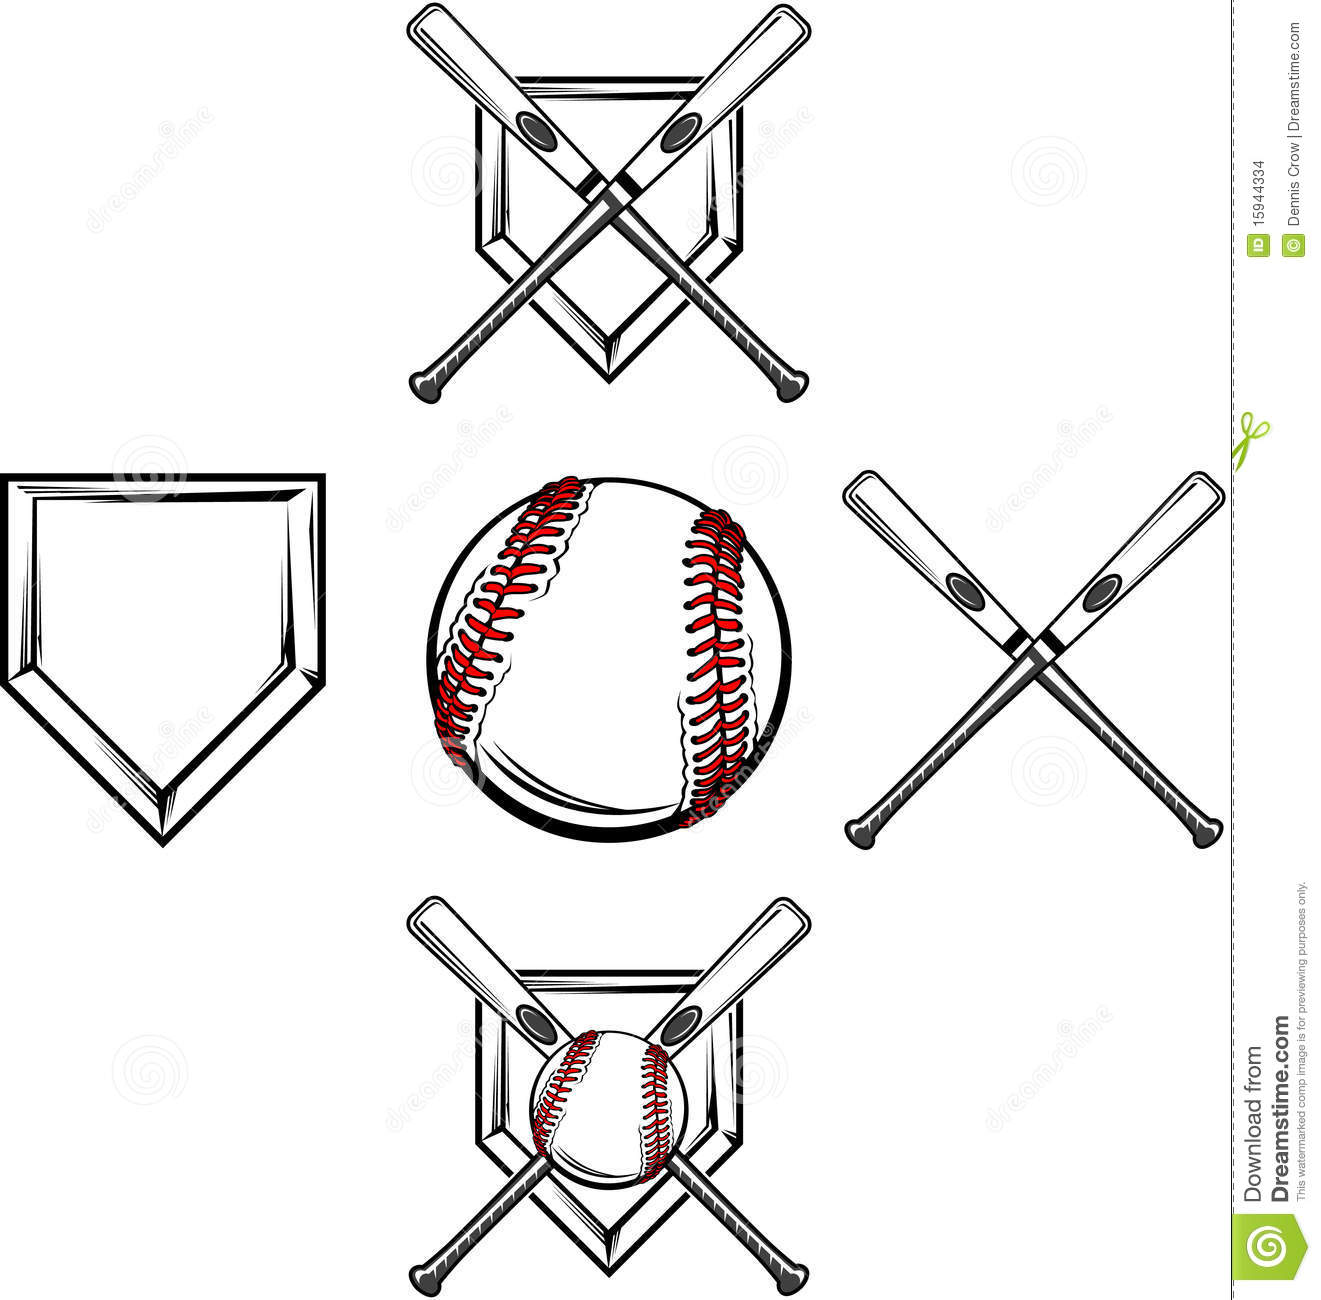 Baseball Softball Images Stock Images